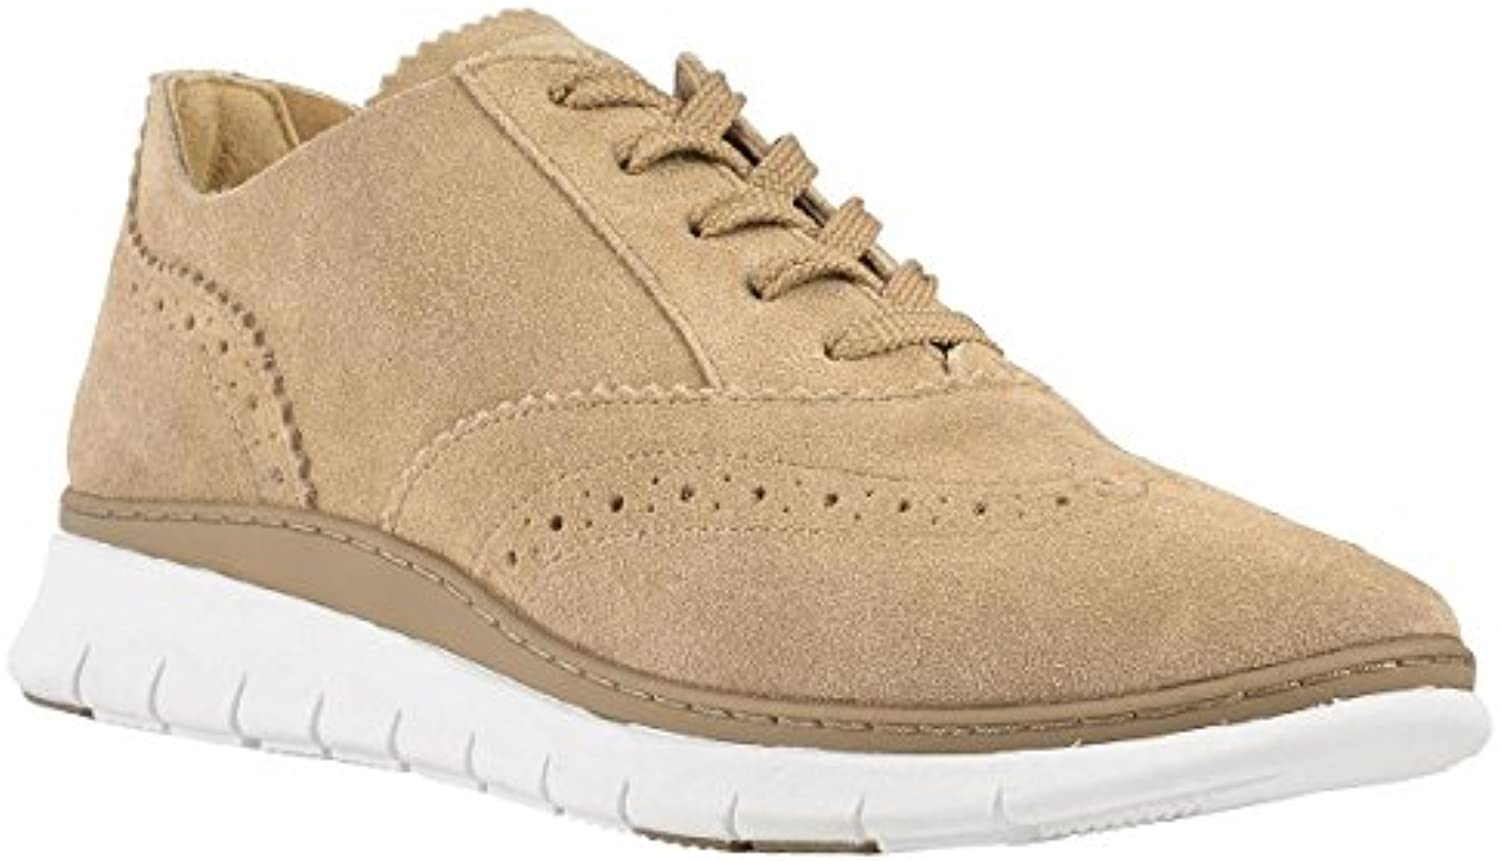 Vionic donna 355 Kenley Fresh Suede Trainers Trainers Trainers | Nuova voce